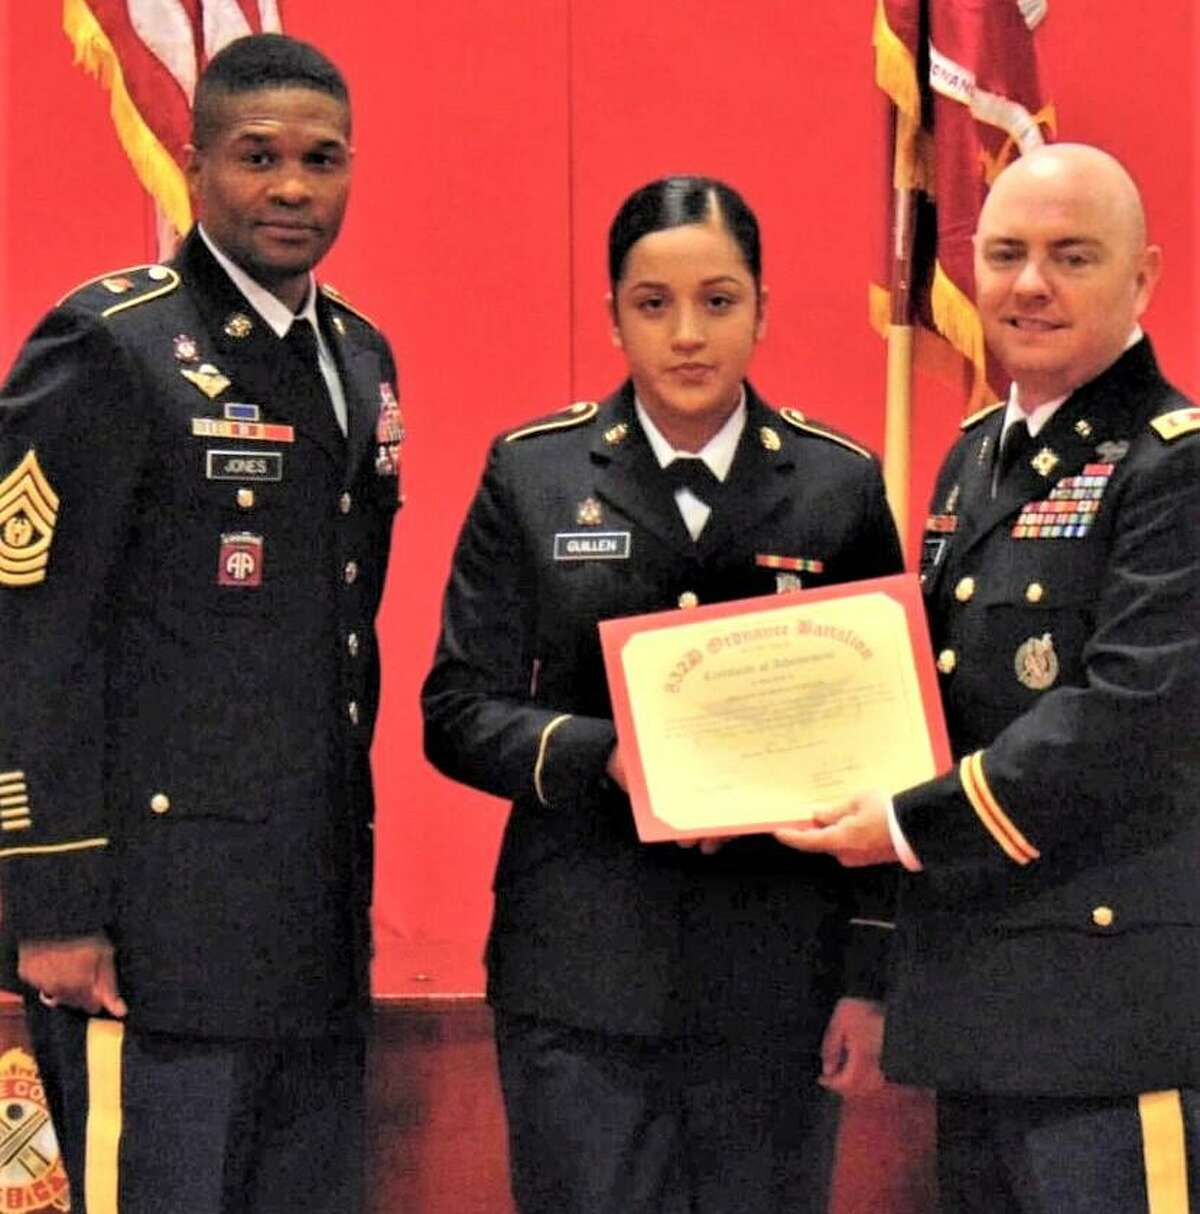 Family photo of soldier Vanessa Guillen, who was last seen on April 22, 2020, in a parking lot at the Fort Hood Army base in Killeen, Texas.